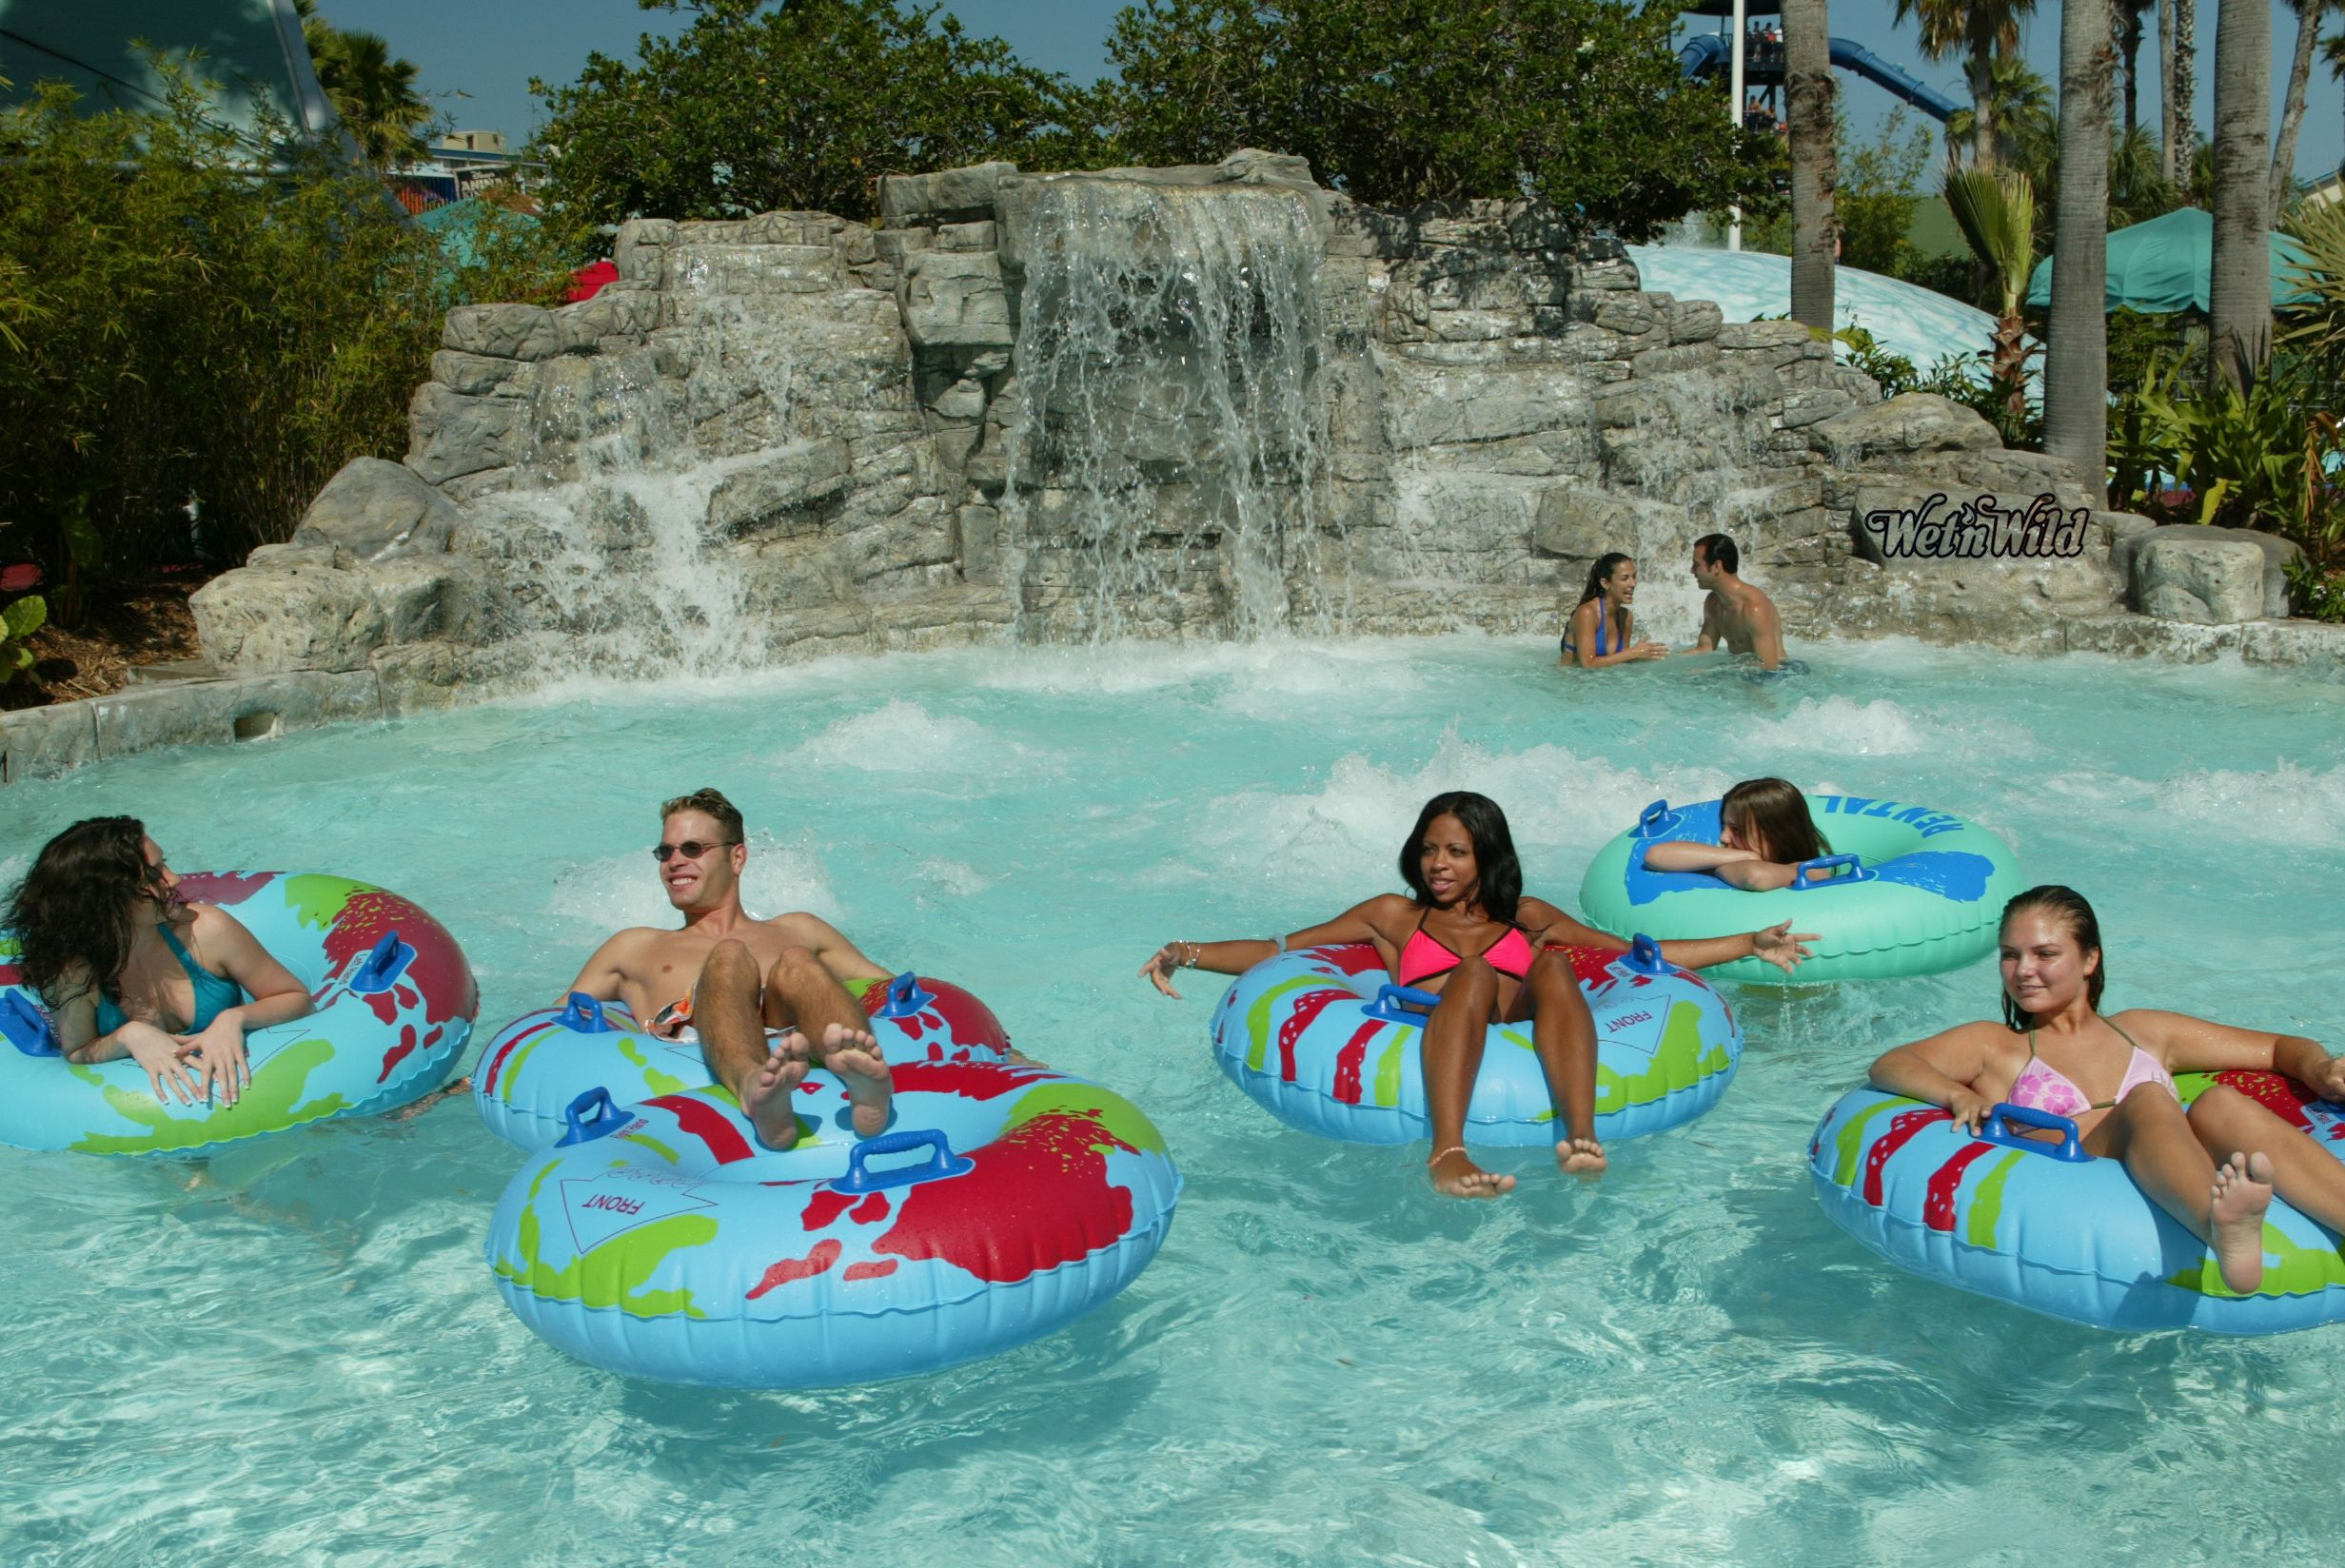 lazy pictures | Check out the ALL-NEW experience on the Lazy River